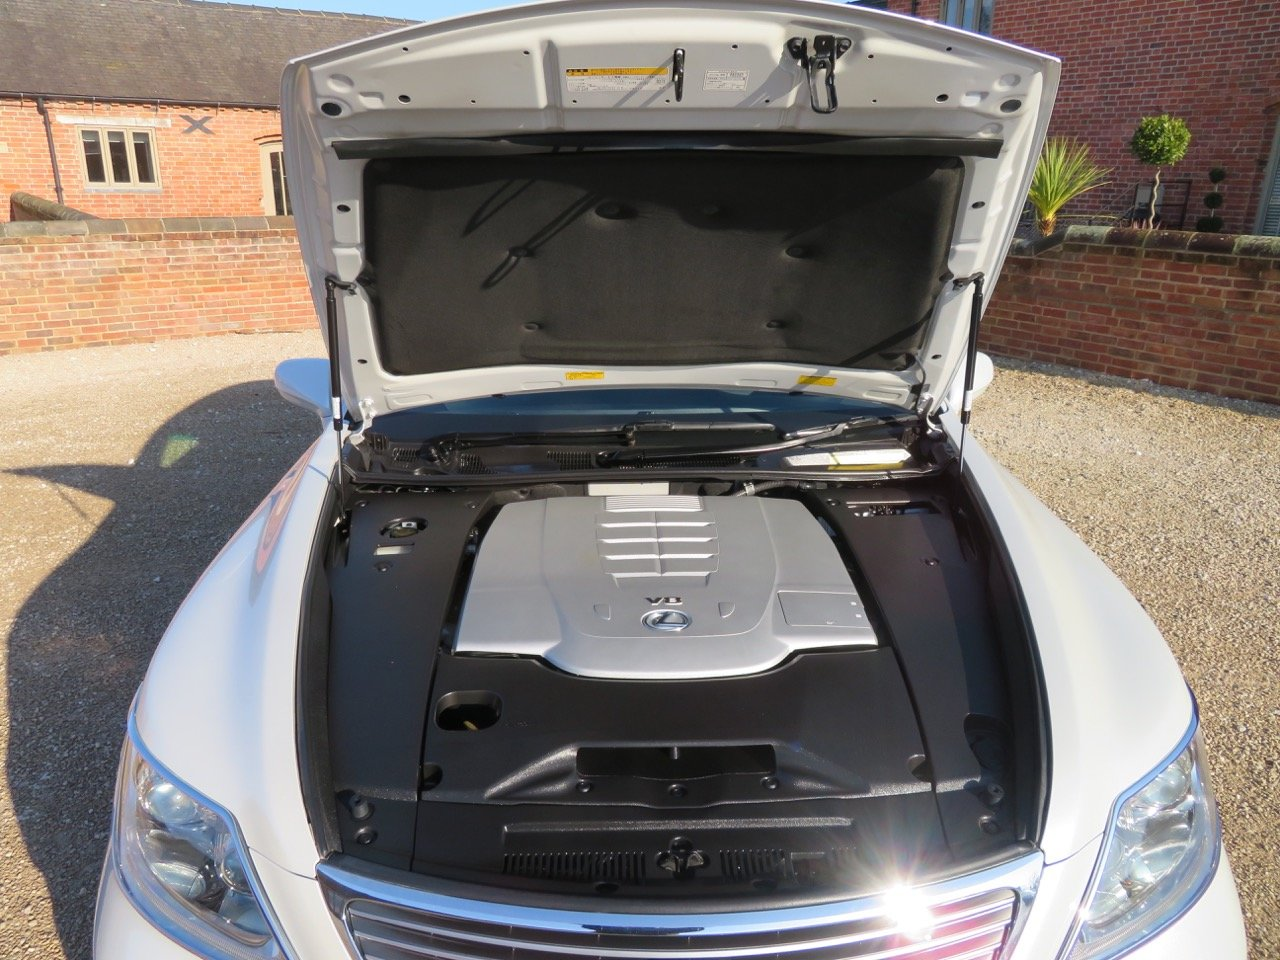 LEXUS LS 460L 2006 7K MILES FROM NEW 1 OWNER FROM NEW For Sale (picture 4 of 6)